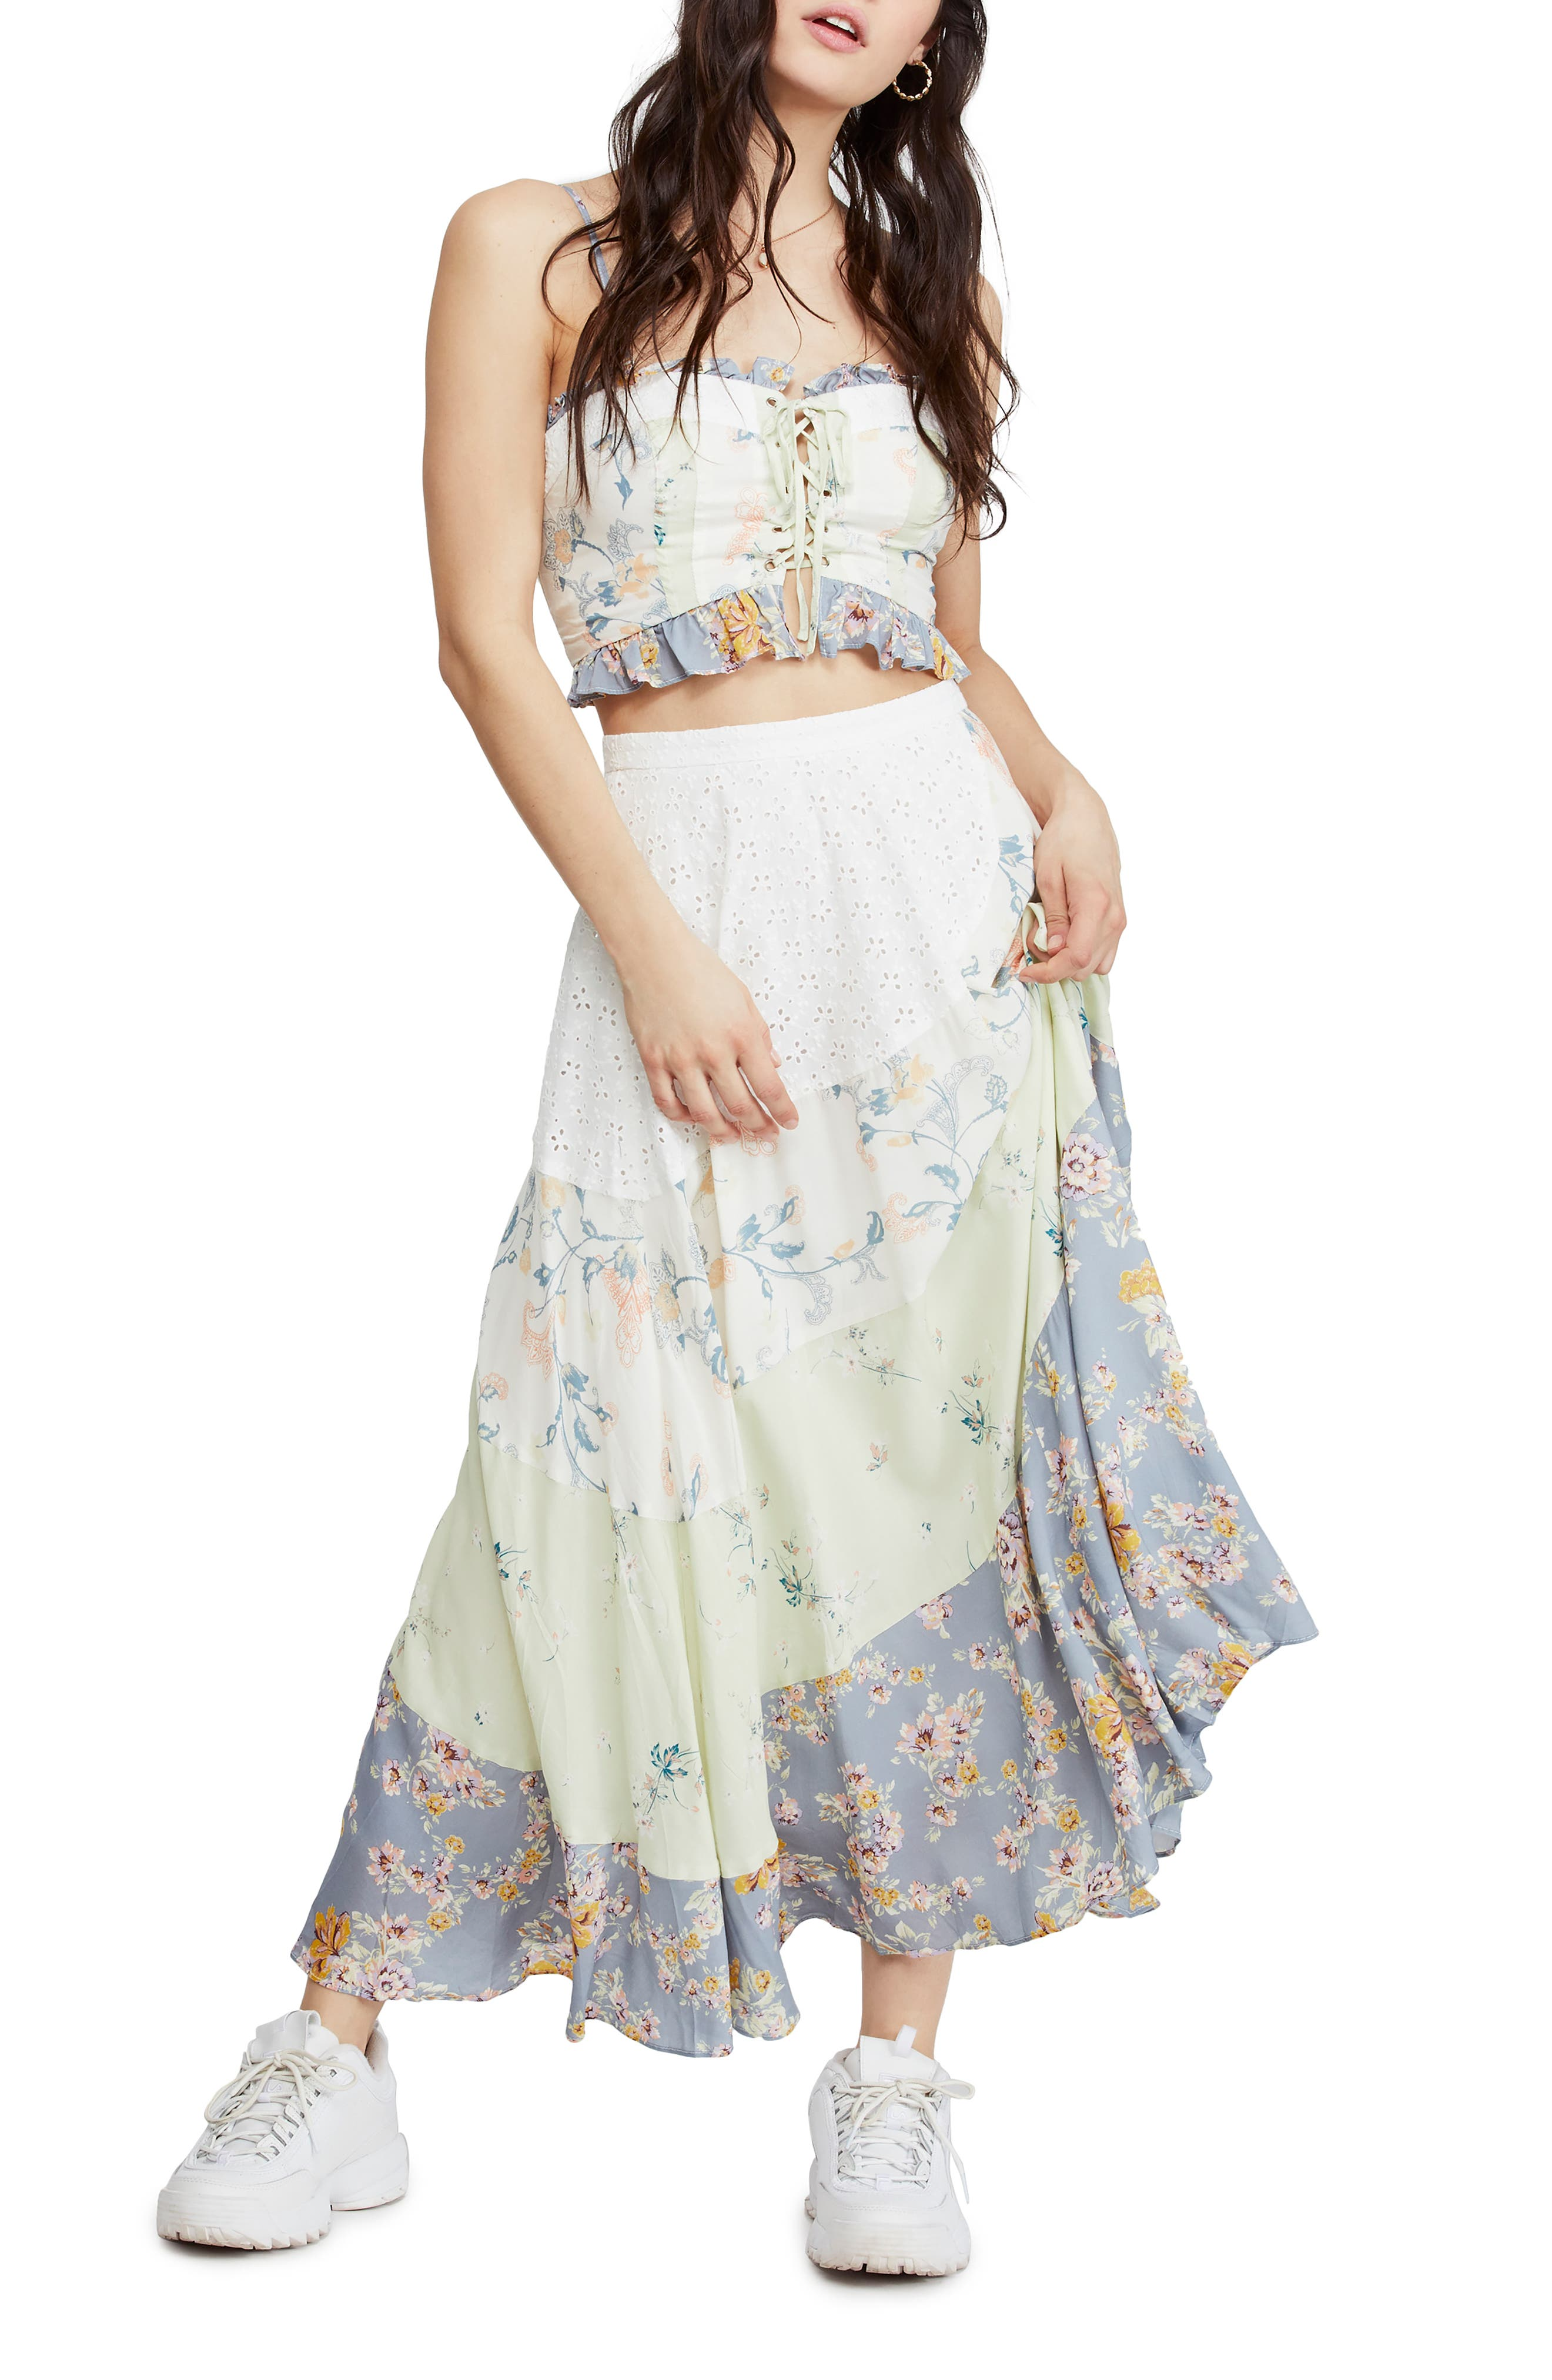 Free People In The Flowers Two-Piece Lace-Up Bodice Dress, Blue